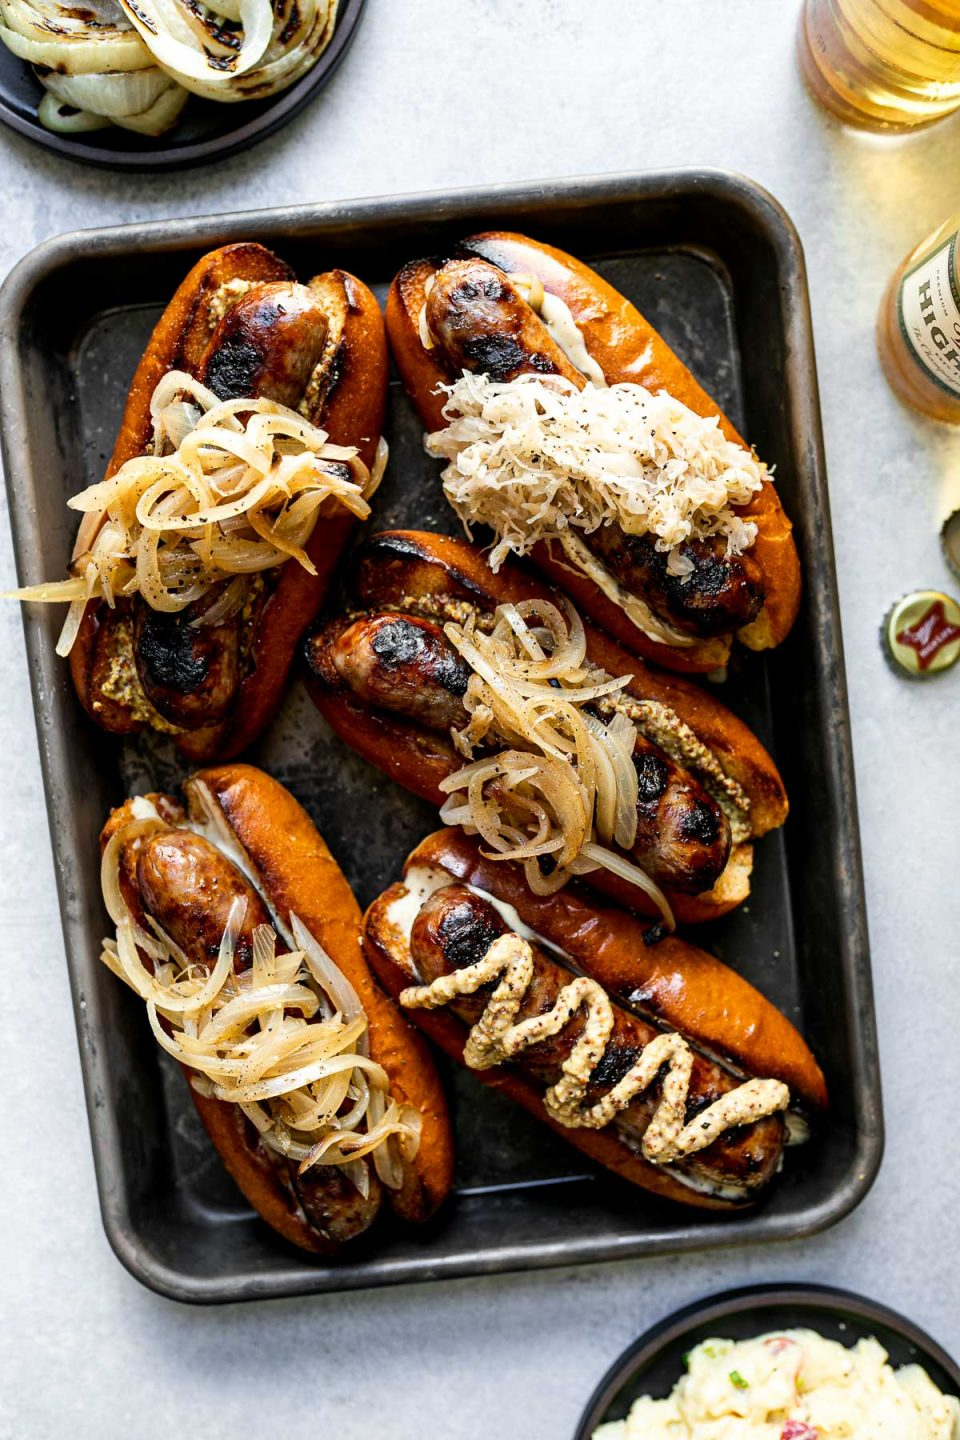 Grilled Wisconsin Beer Brats arranged on a small Nordicware baking sheet. The brats sit on toasted brioche buns, topped with mayonnaise, mustard, braised onions, sauerkraut, etc. The baking sheet sits atop a light blue surface, next to some Miller High Life bottle caps & beer bottles, a small black plate of grilled onions, & a small black plate of potato salad.